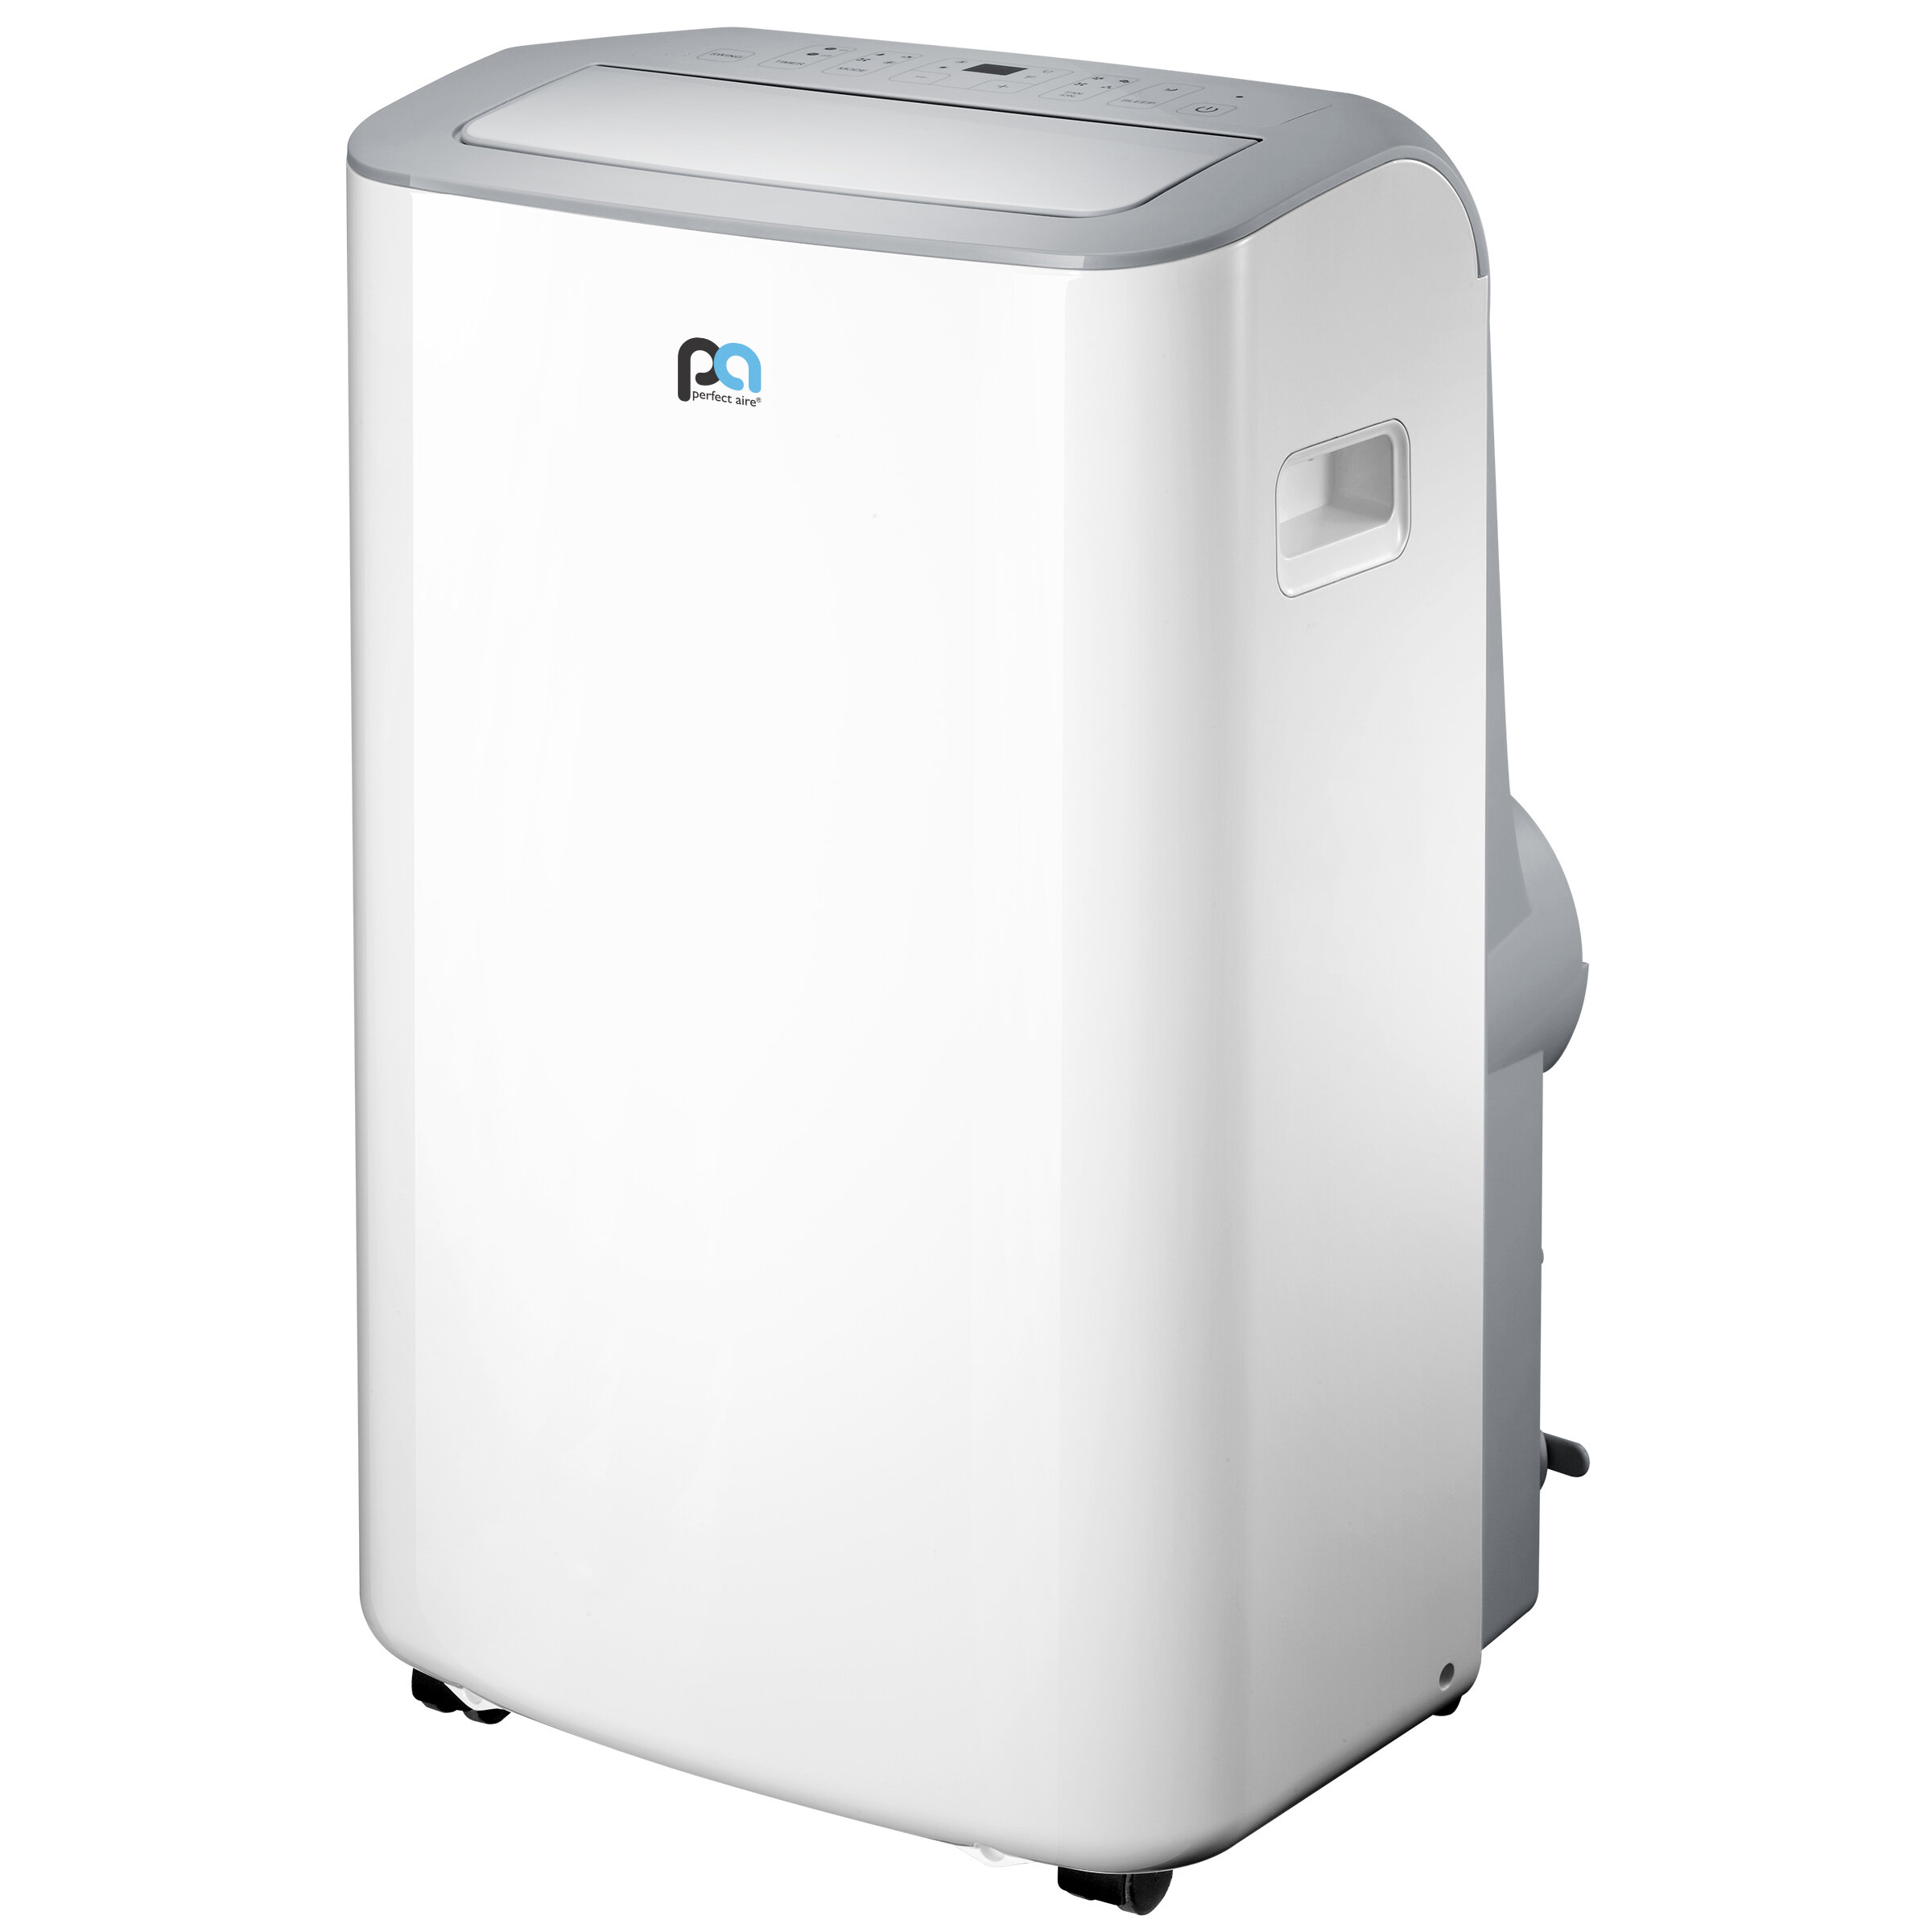 PerfectAire 12,000 BTU Portable Air Conditioner With Remote   Wayfair